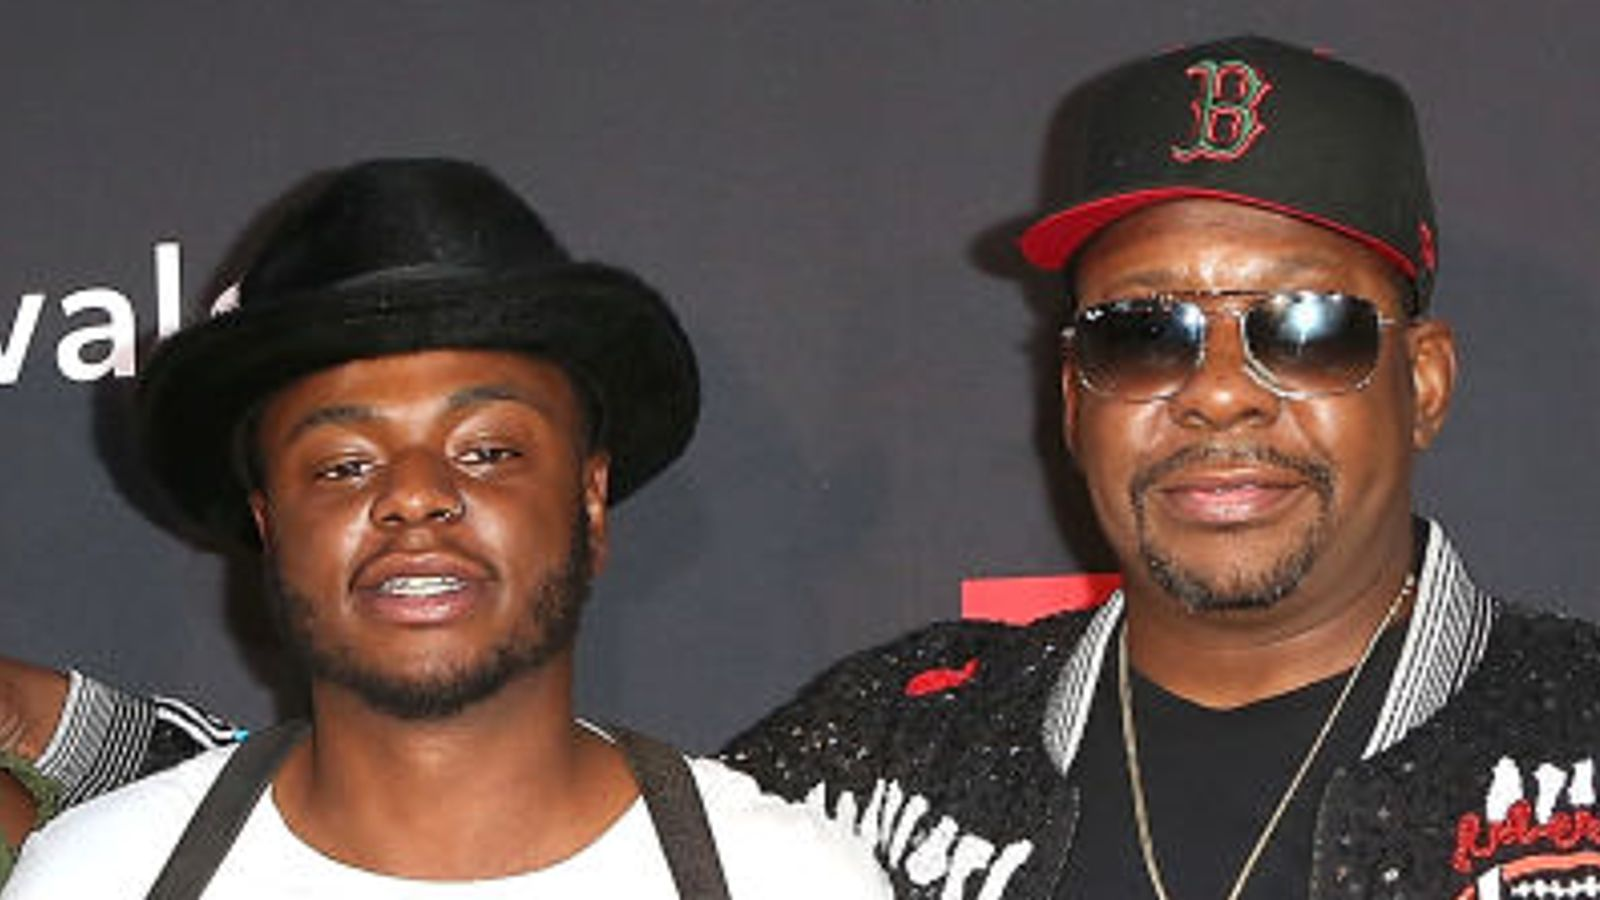 Bobby Brown's Son Bobby Jr Found Dead At His Home